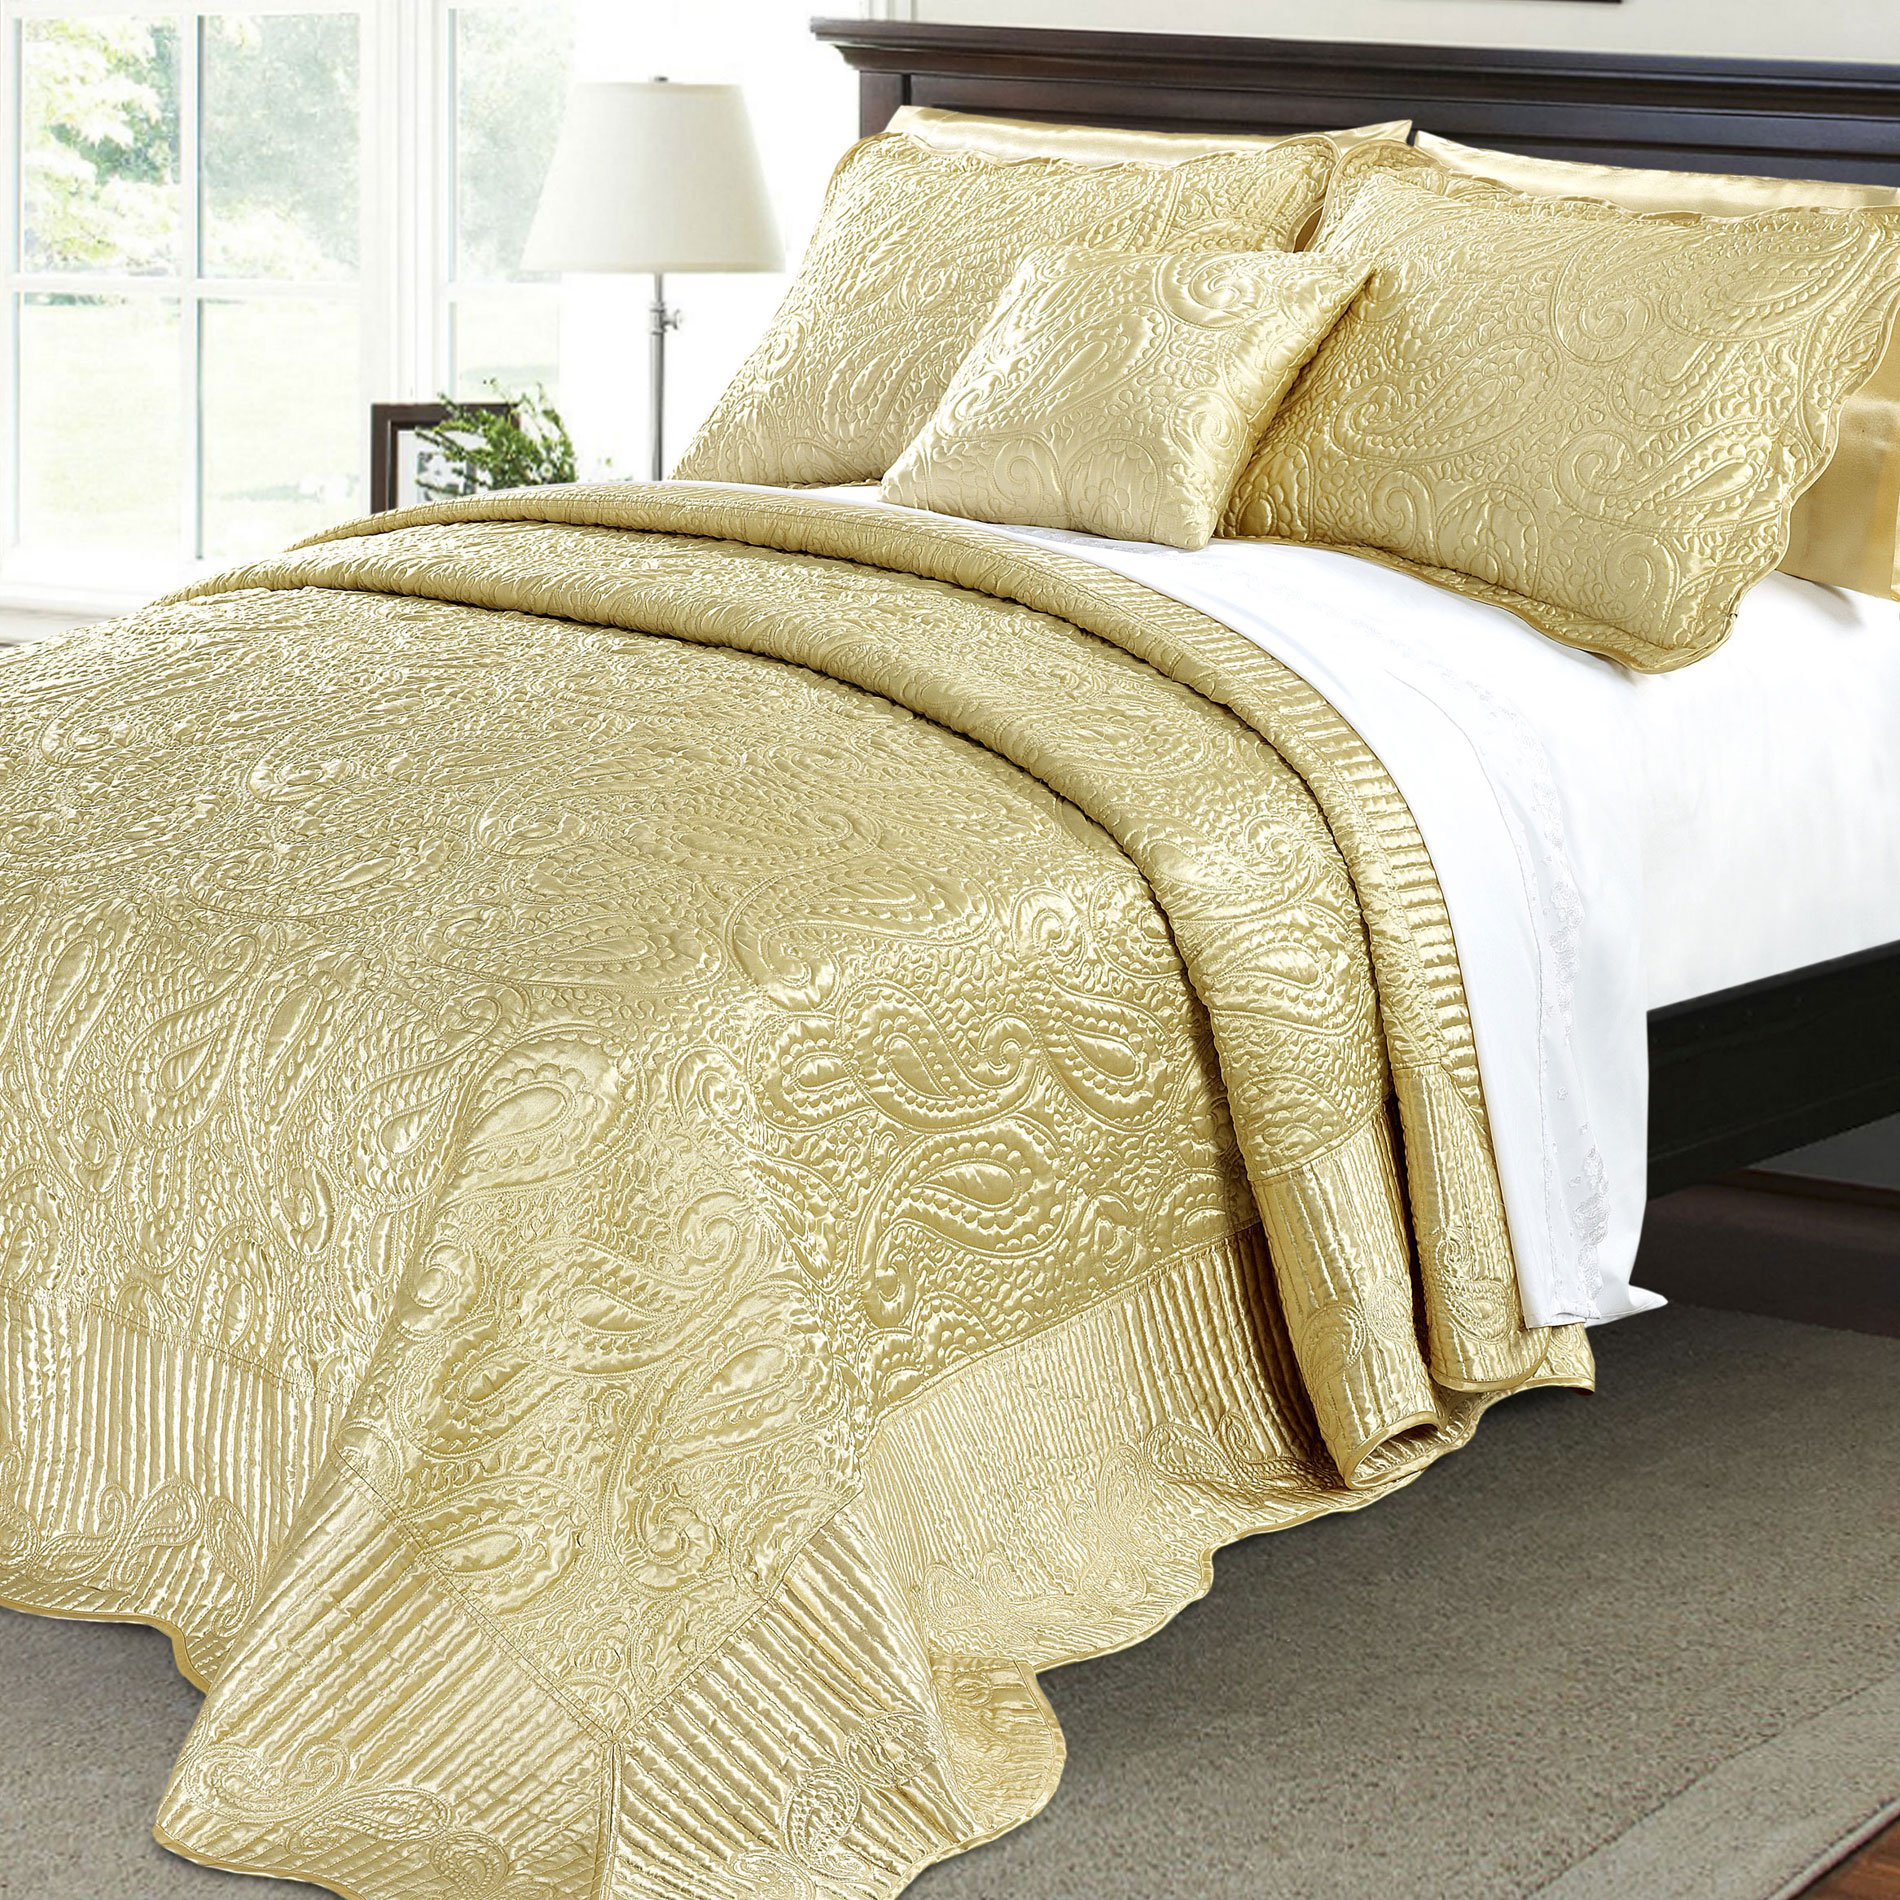 Home Soft Things Serenta Quilted Satin 4 Piece Bedspread Set, King, Gold